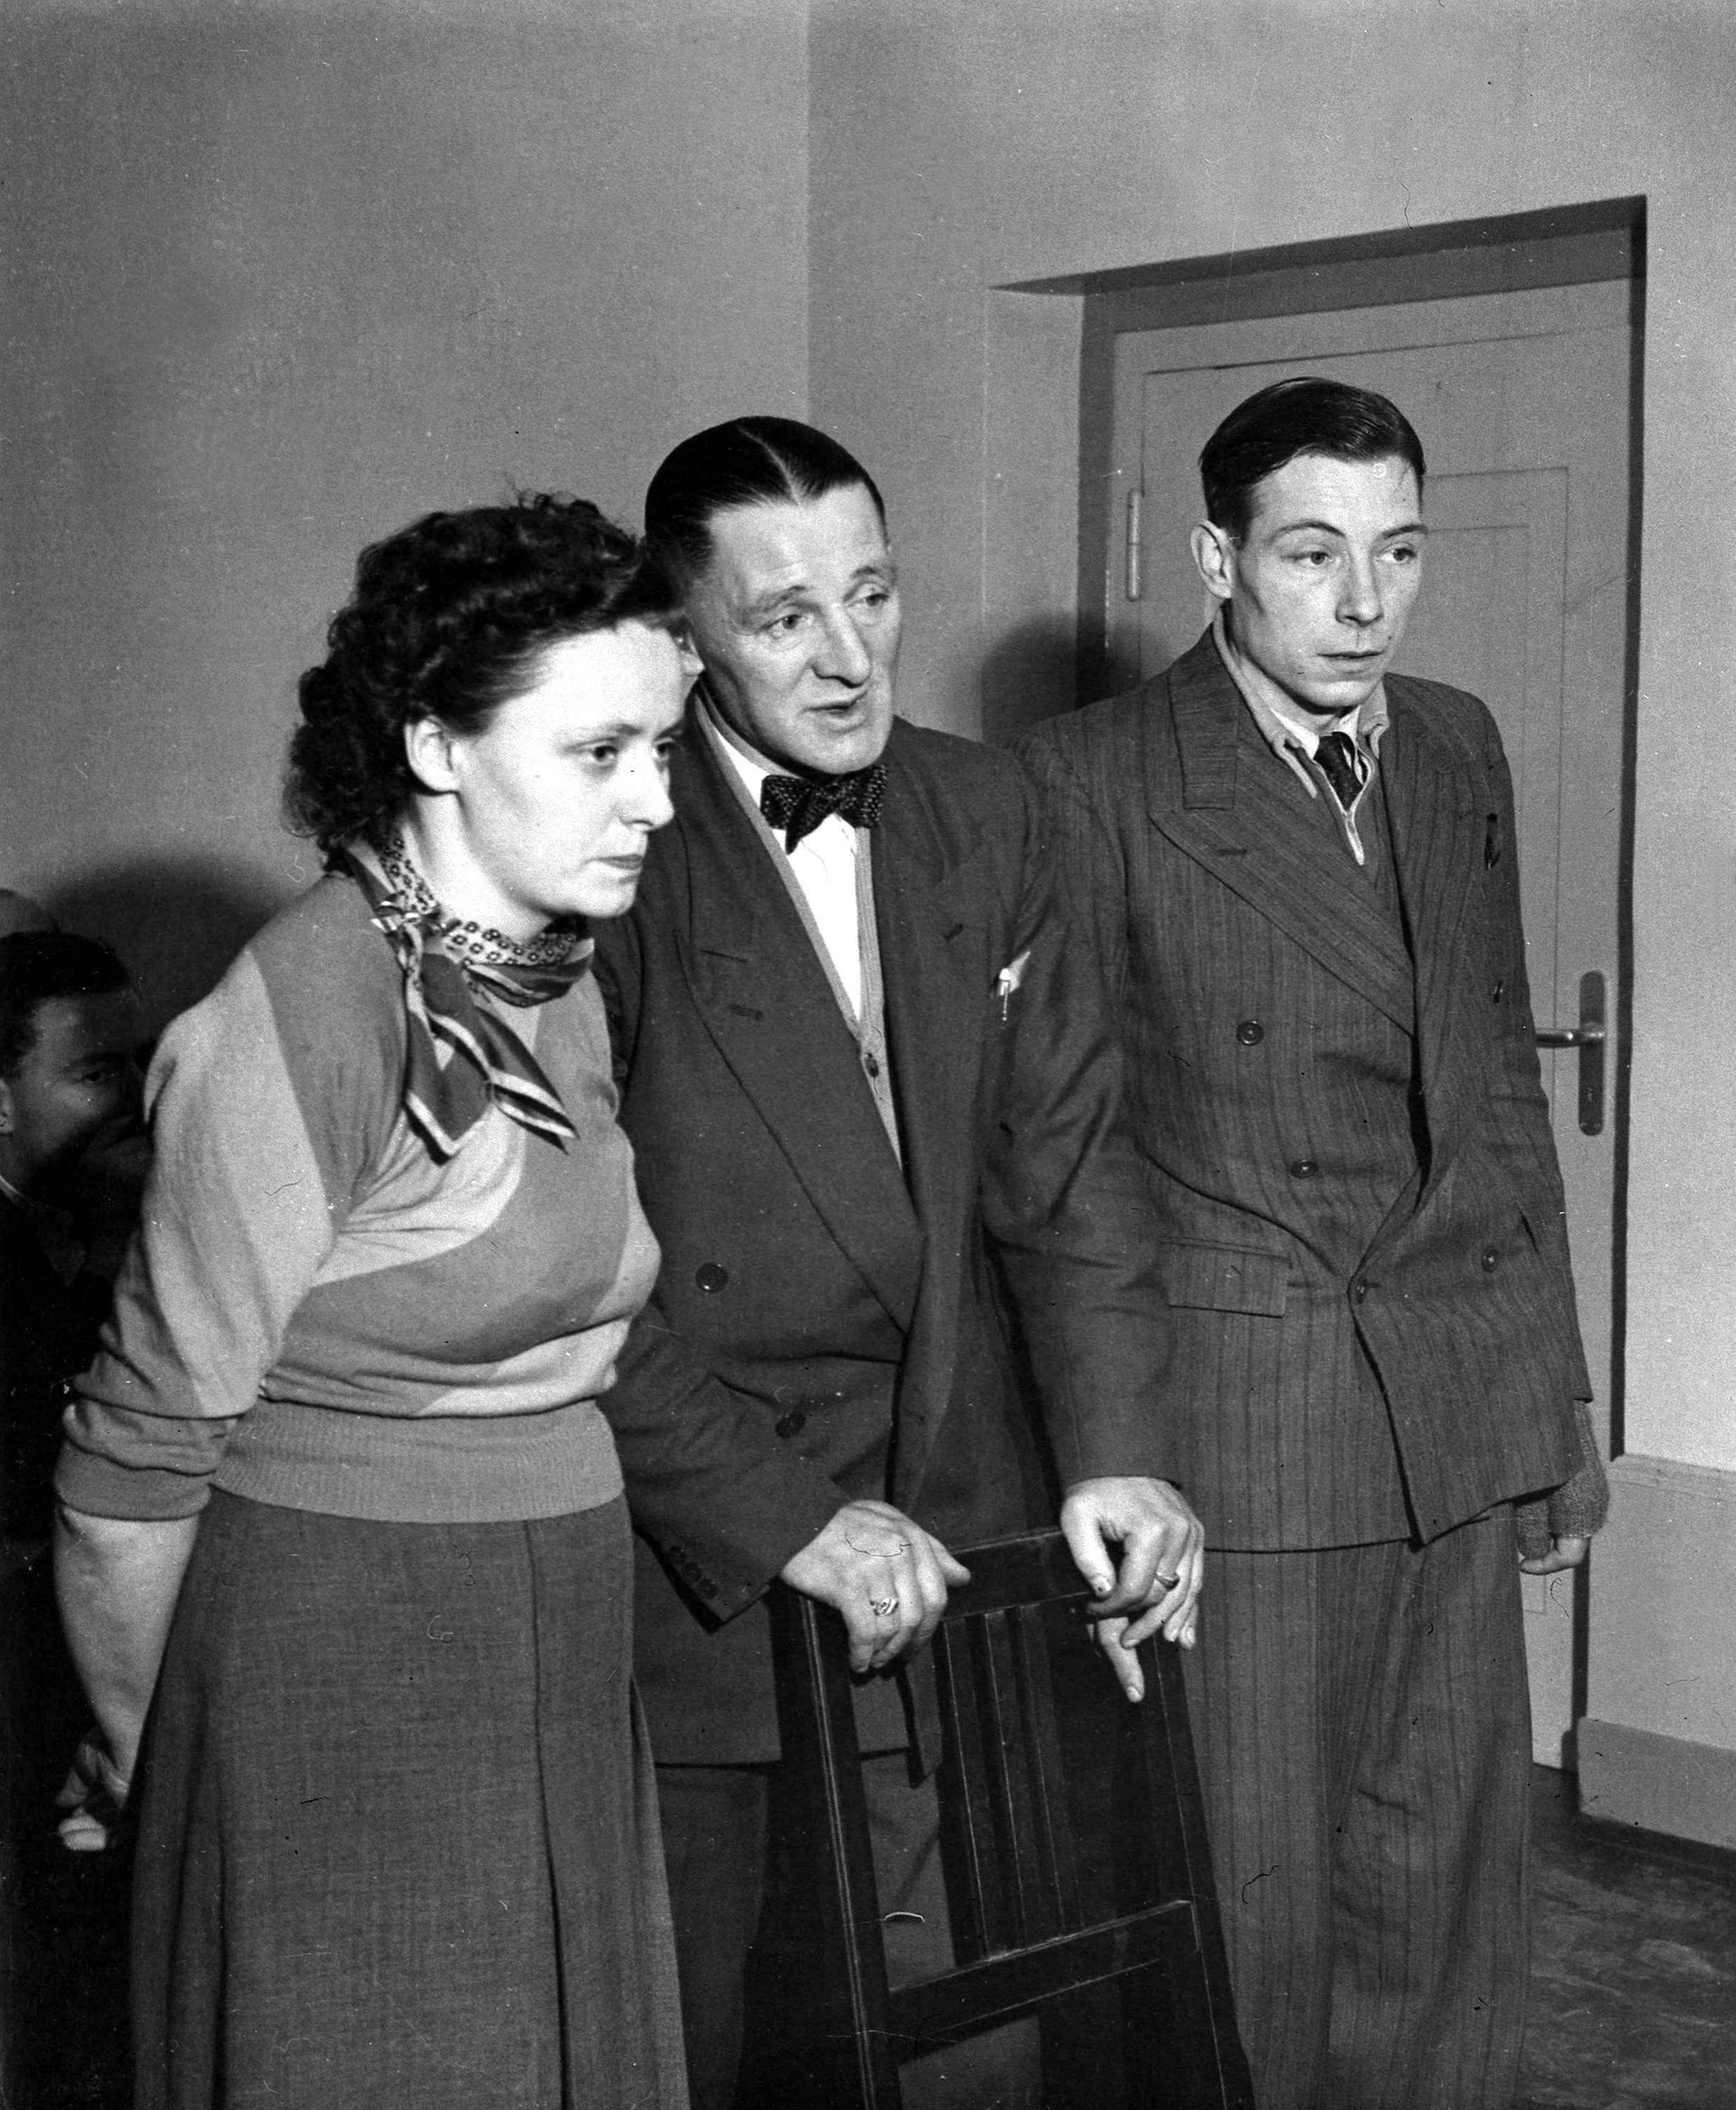 Robert William Ferris, right, and Charles Joseph Coward, centre, both Britons who were prisoners of war at Auschwitz, are seen with a language interpreter as the 'slave labour' lawsuit against German conglomerate IG Farben opens at a court in Frankfurt, Feb. 19, 1953. (AP Photo)